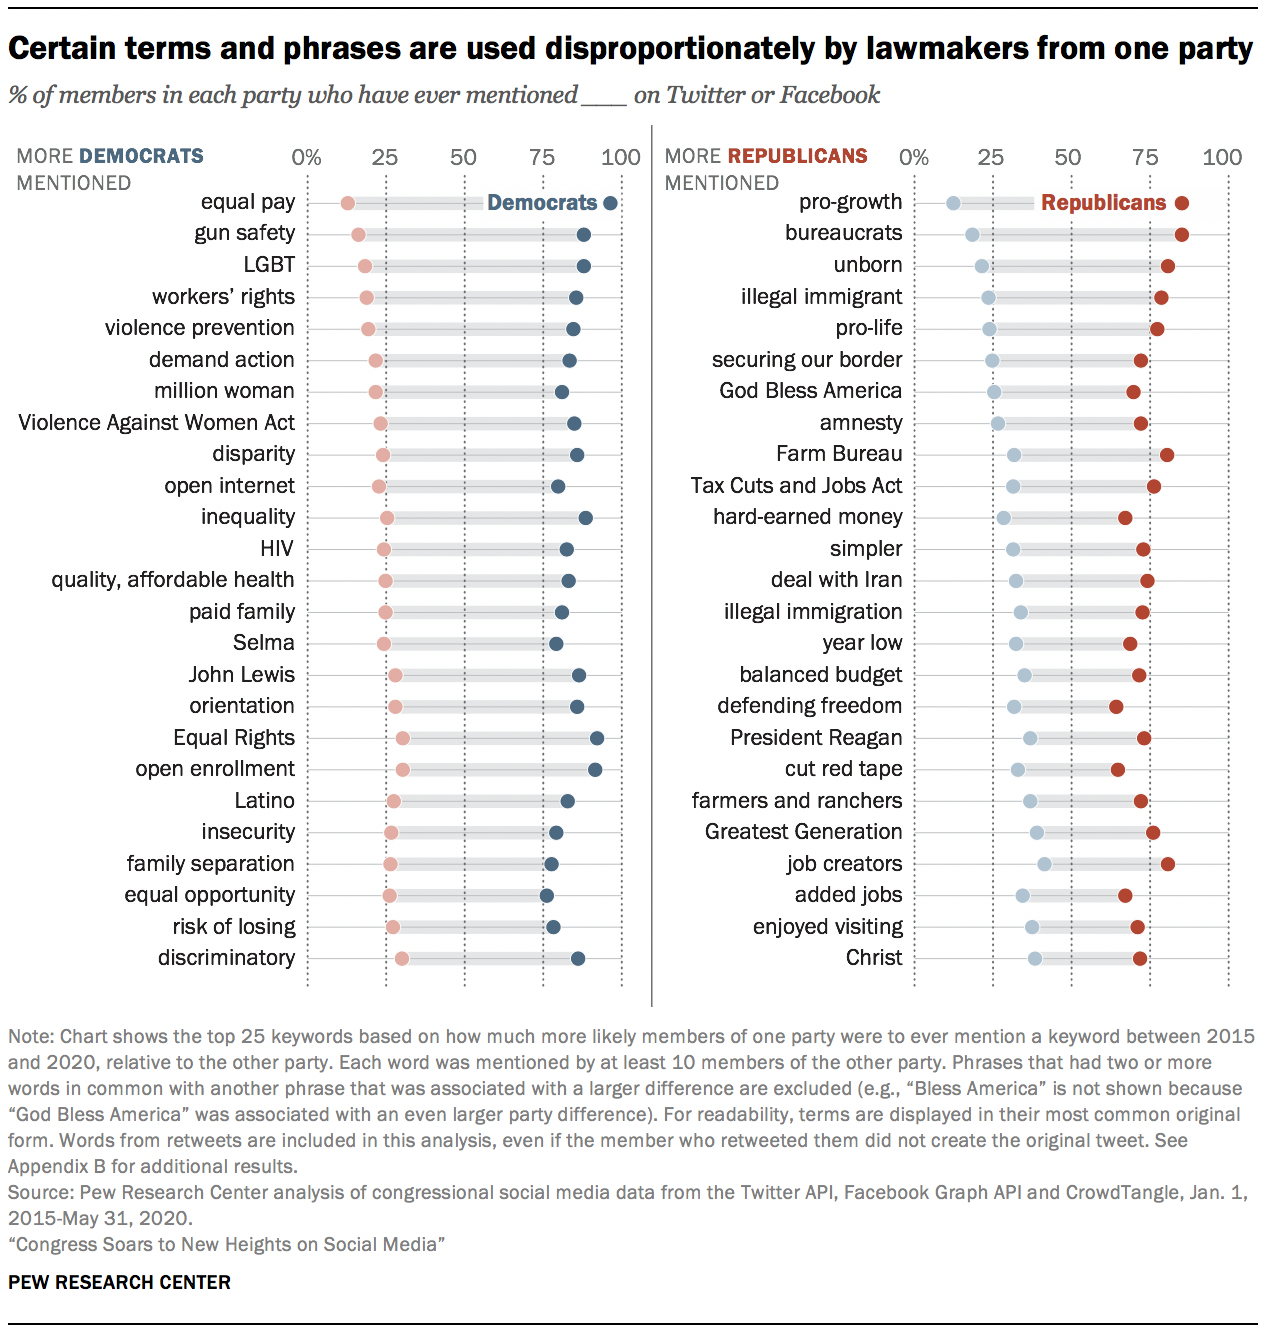 Certain terms and phrases are used disproportionately by lawmakers from one party